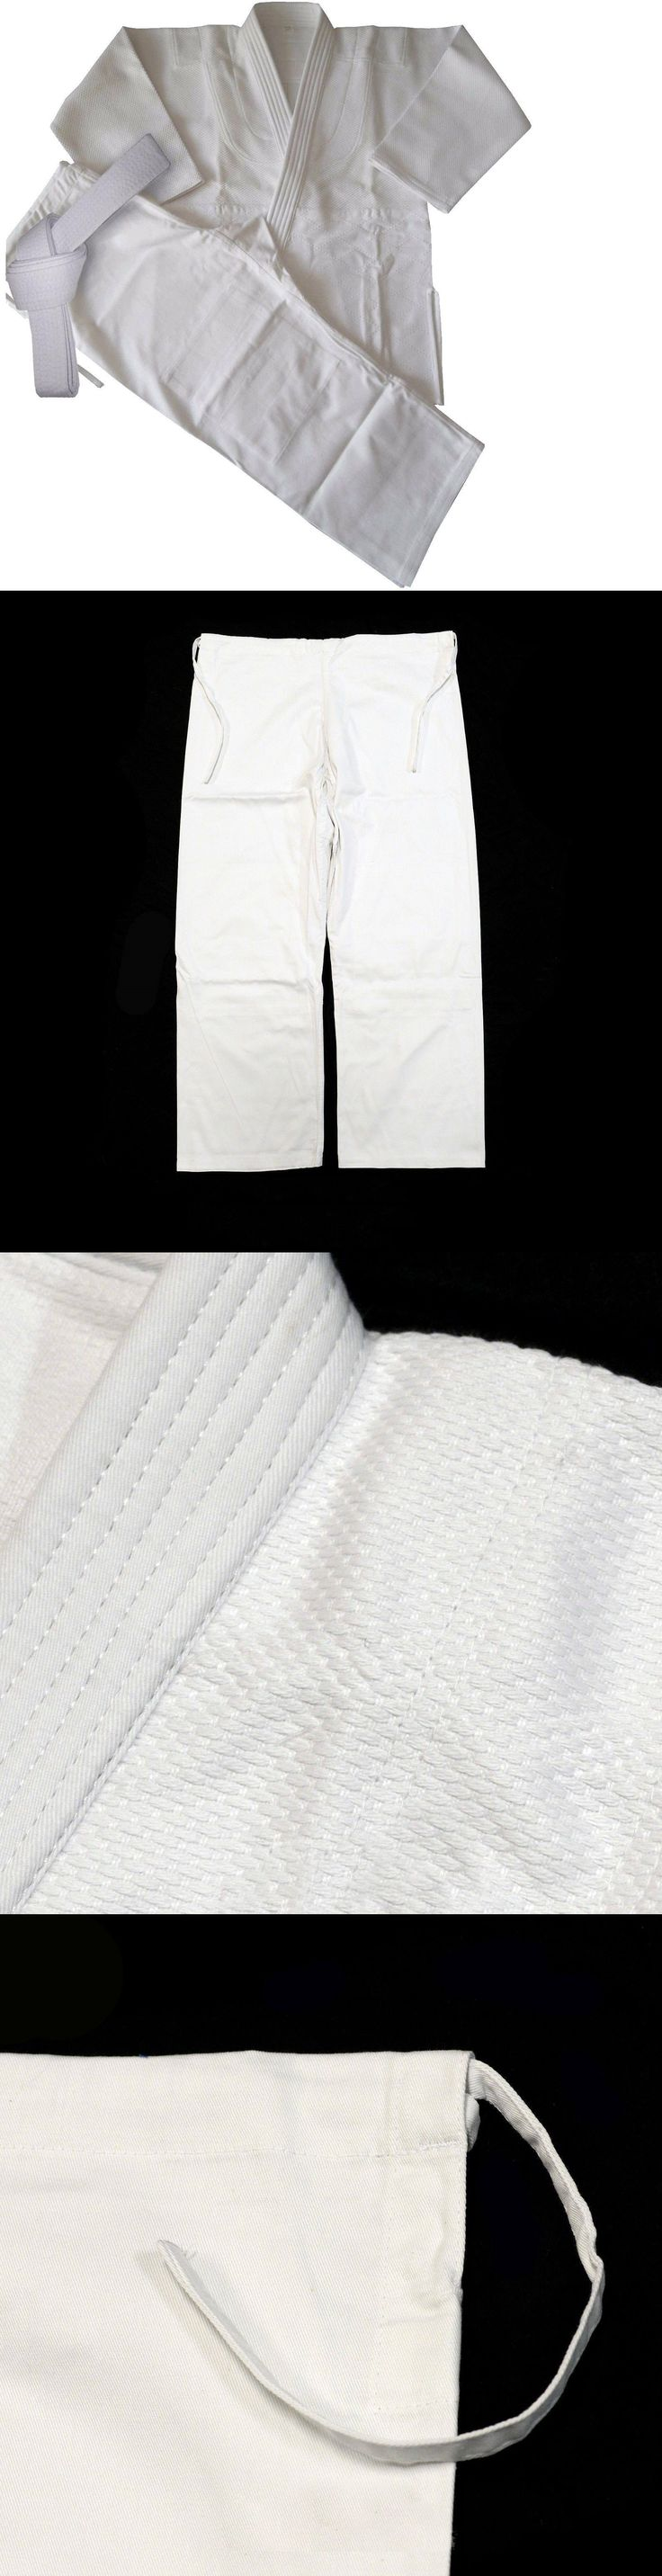 Uniforms and Gis 179774: Judo Gi Professional White Gi Best Uniform 100% Cotton Complete Uniform- Ssco -> BUY IT NOW ONLY: $36.26 on eBay!